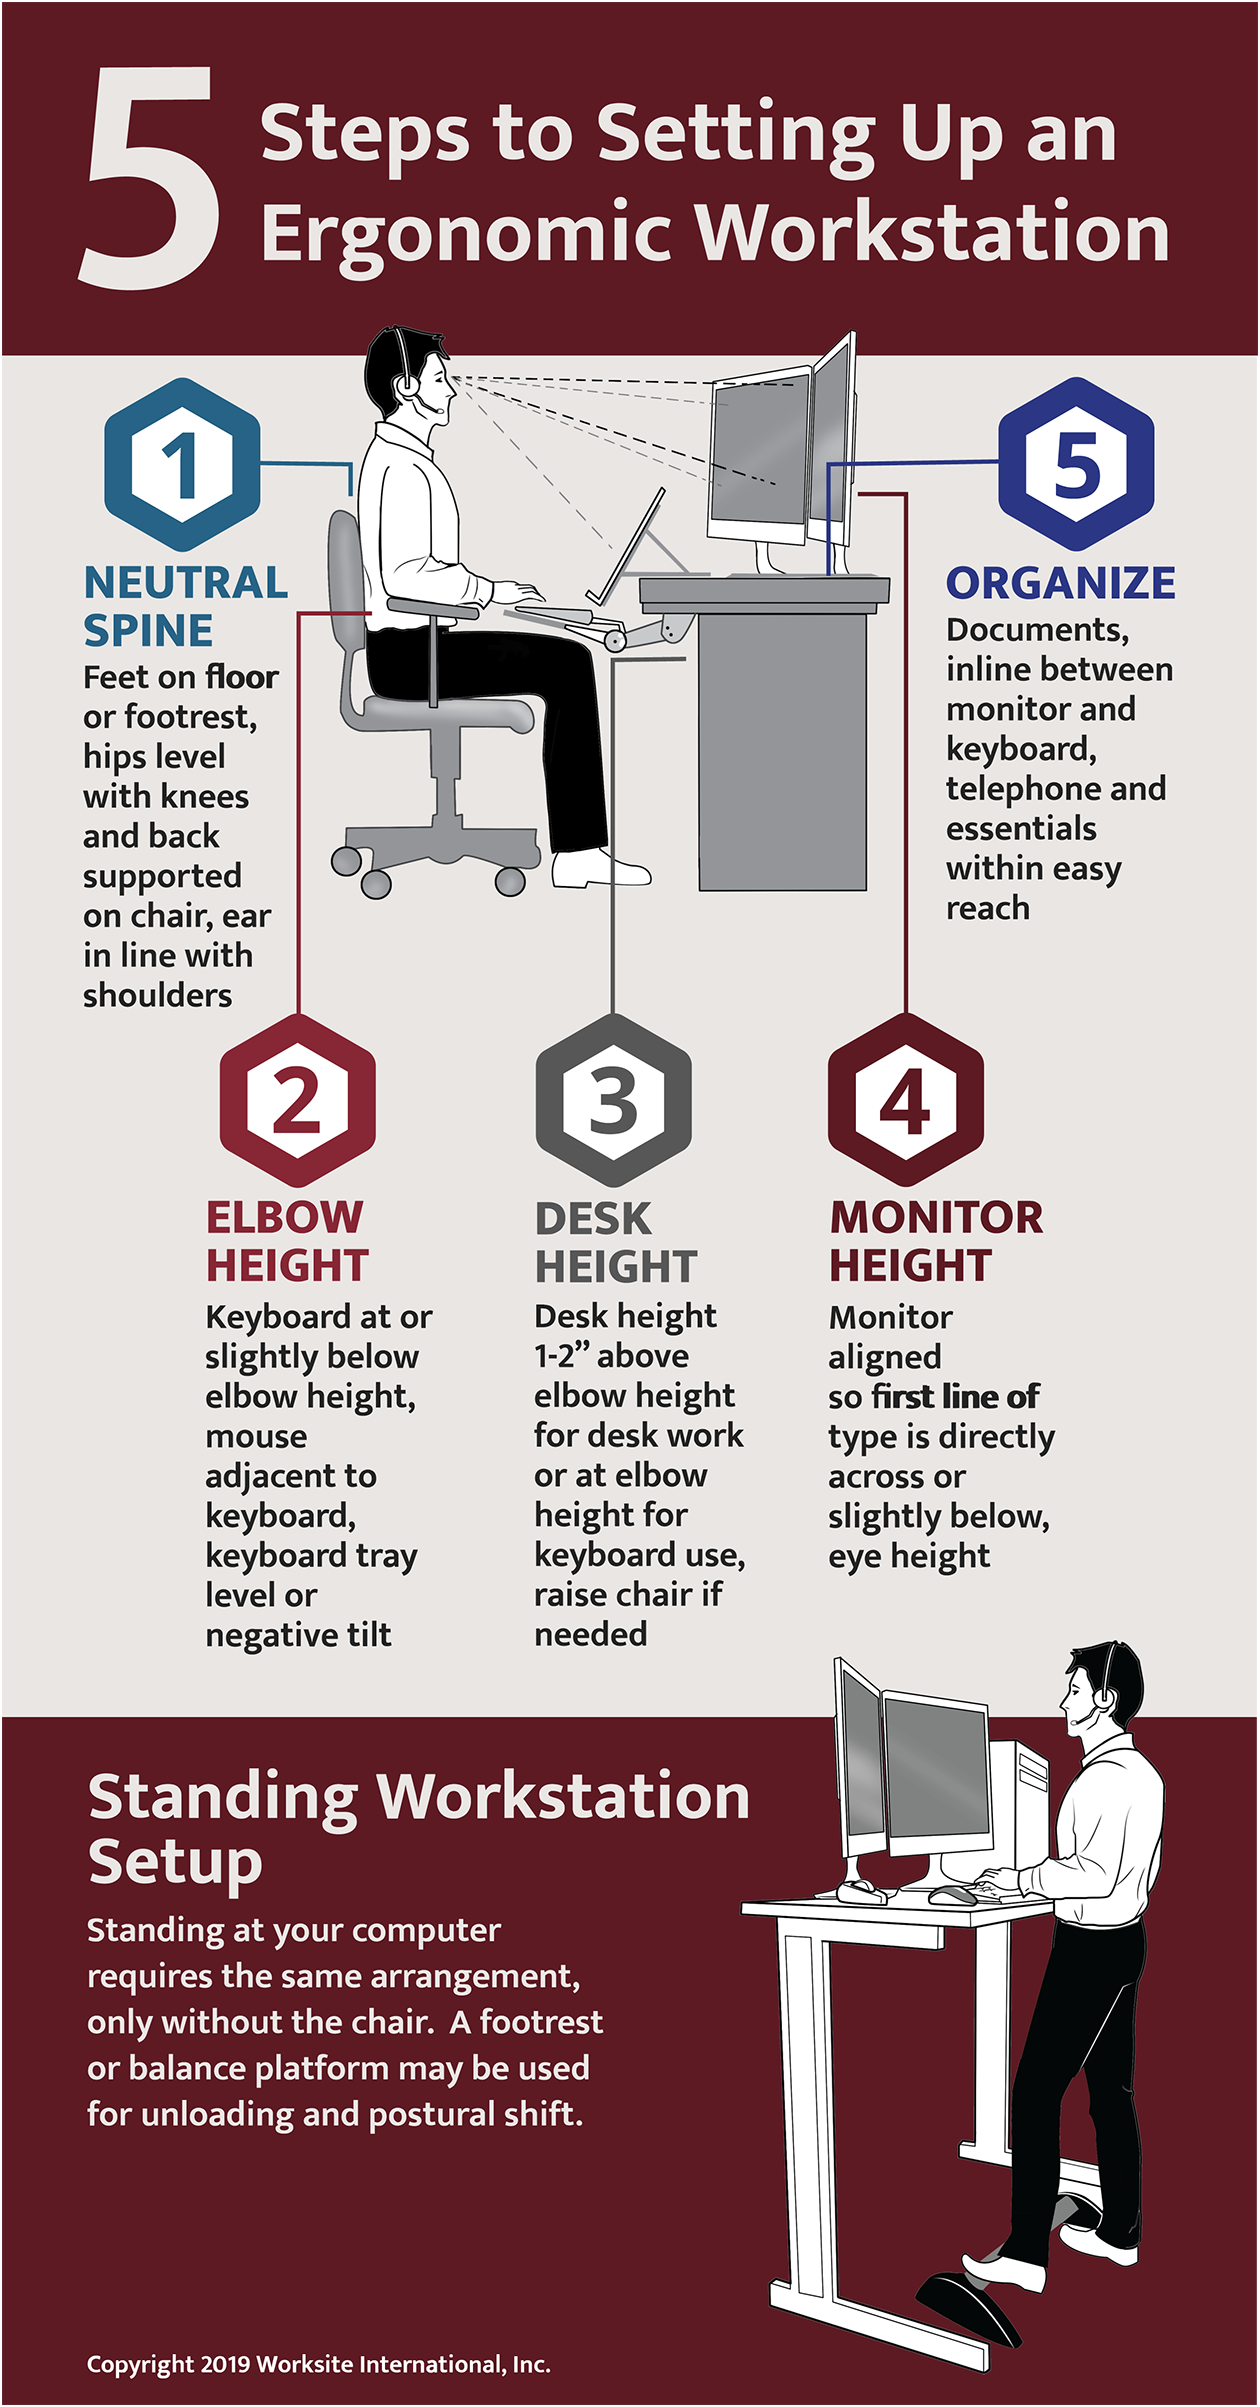 5 Steps to Setting Up an Ergonomic Workstation [Infographic]